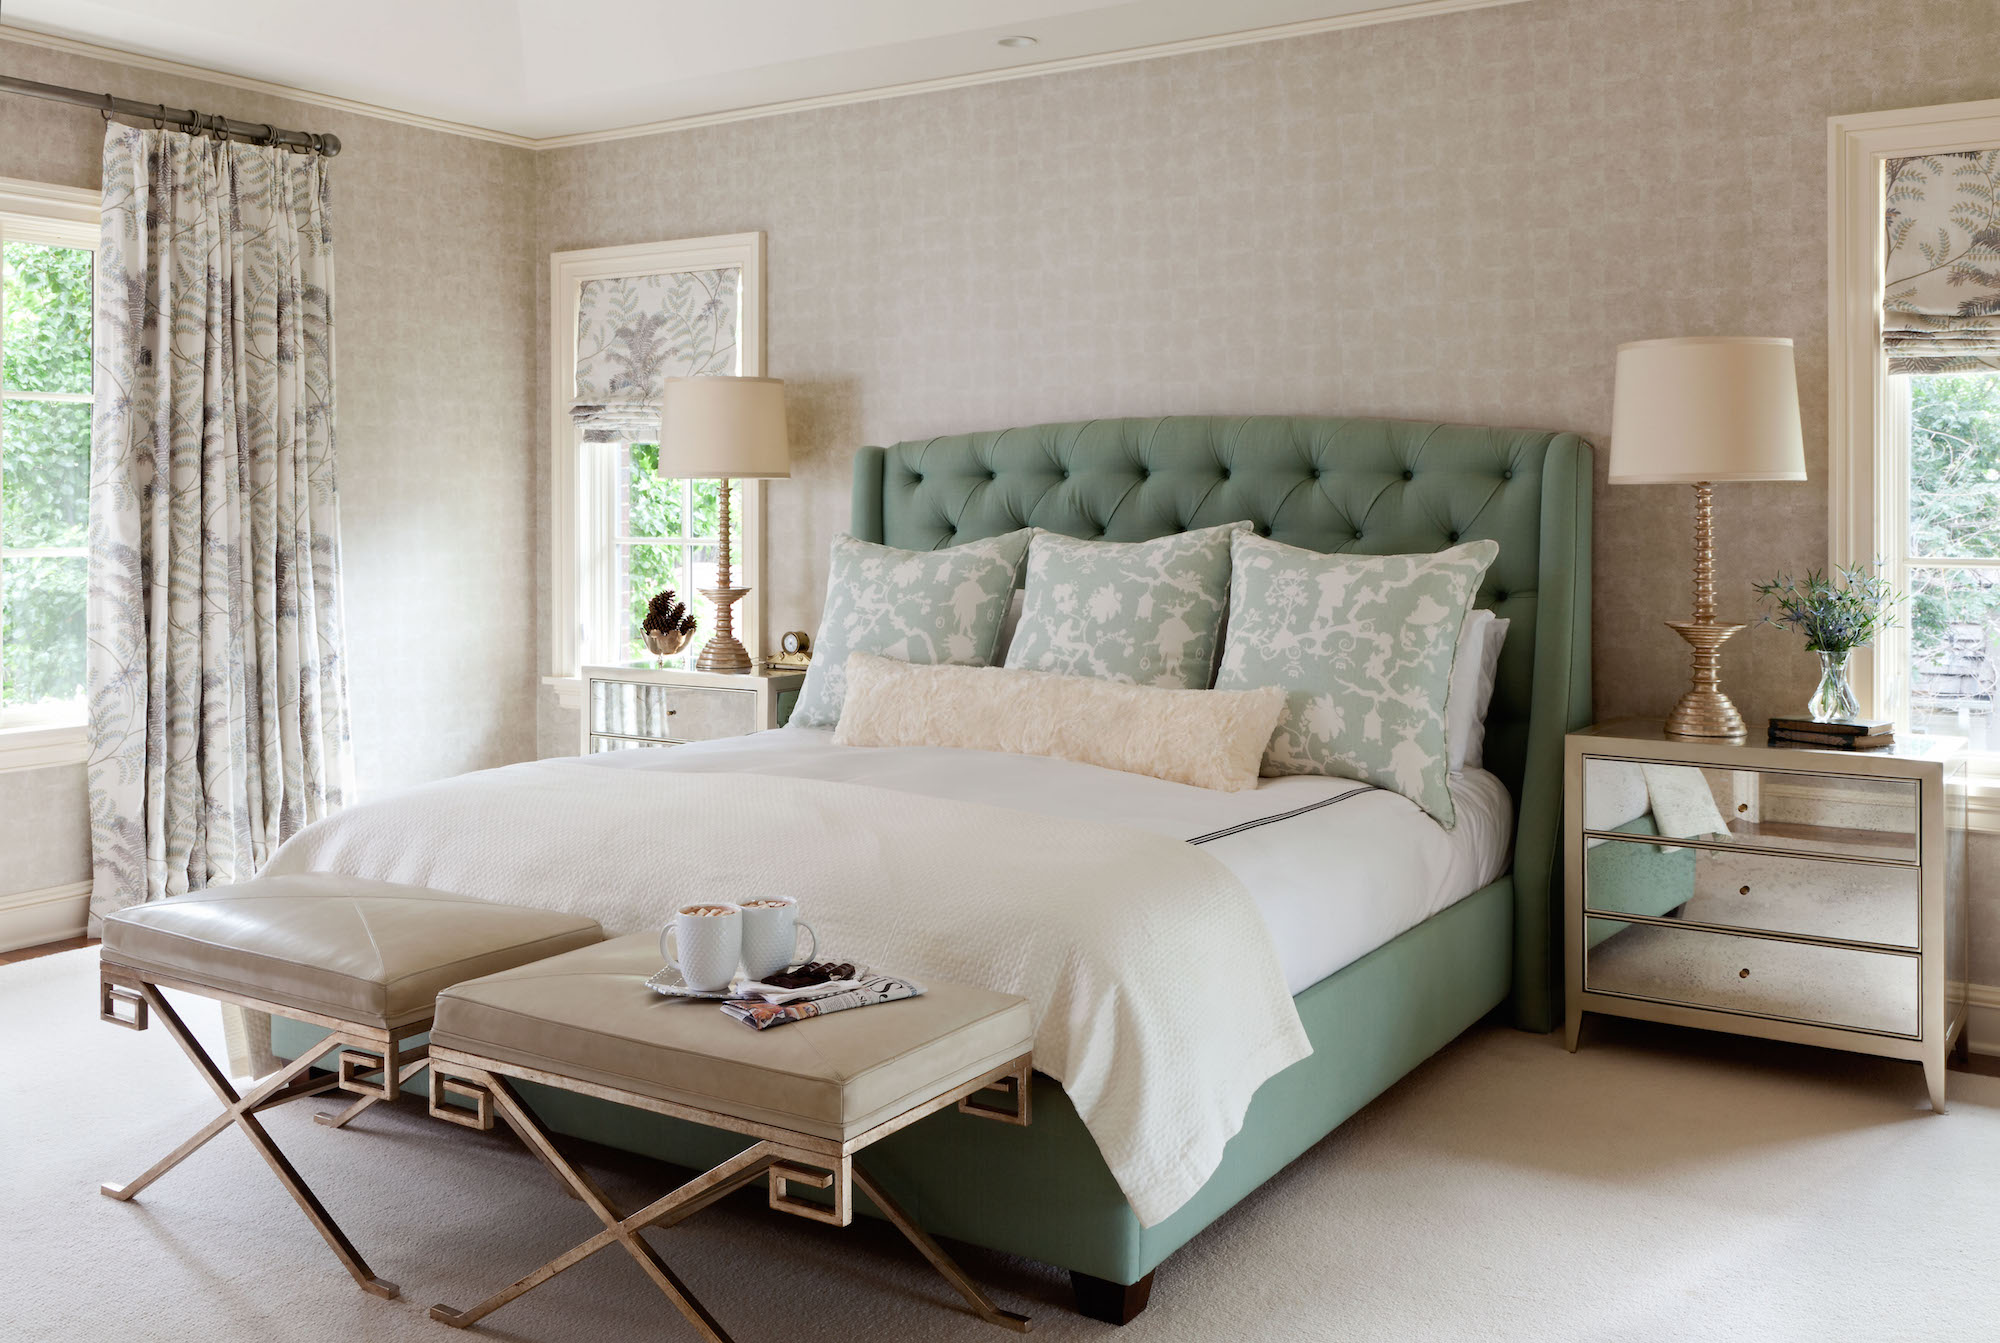 Tamba wallpaper by Osborne & Little wraps the bedroom walls in tranquility. Further subtleties come from custom draperies in Rochelle by Colefax and Fowler and custom pillows donning a modernized chinoiserie Shantung Silhouette print by Schumacher. Photo by Emily Minton Redfield